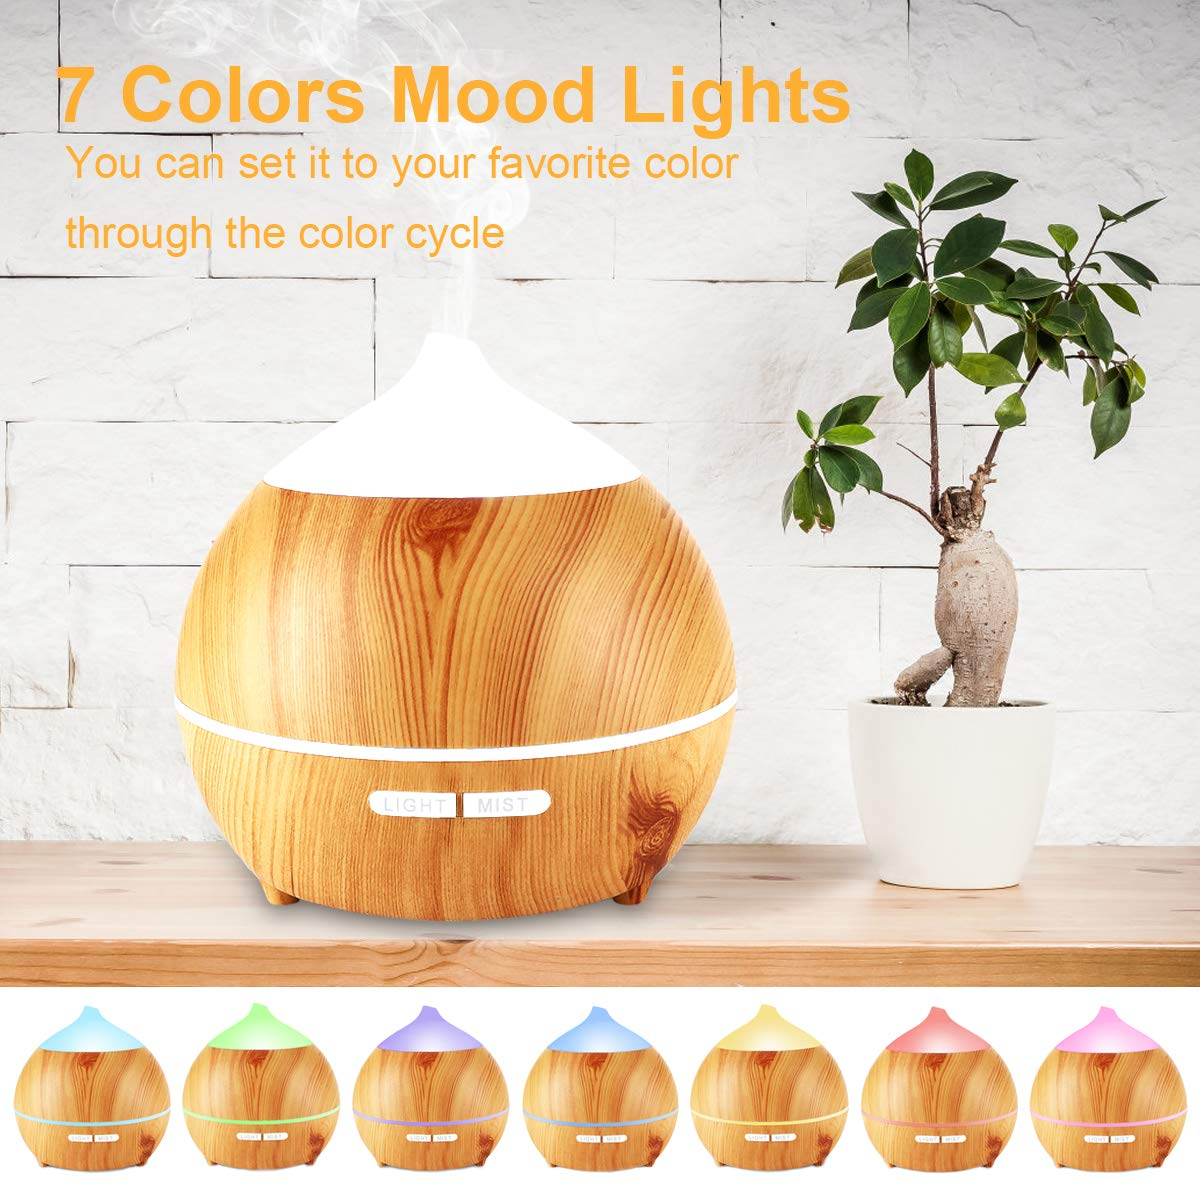 Essential Oil Diffuser XFelectronics 2 pack 250ml Diffusers for Essential Oils Wood Grain Aromatherapy Diffuser Ultrasonic Humidifier with Waterless Auto Shut off, 7 Colors Light for Home Office Baby by Xfelec (Image #4)